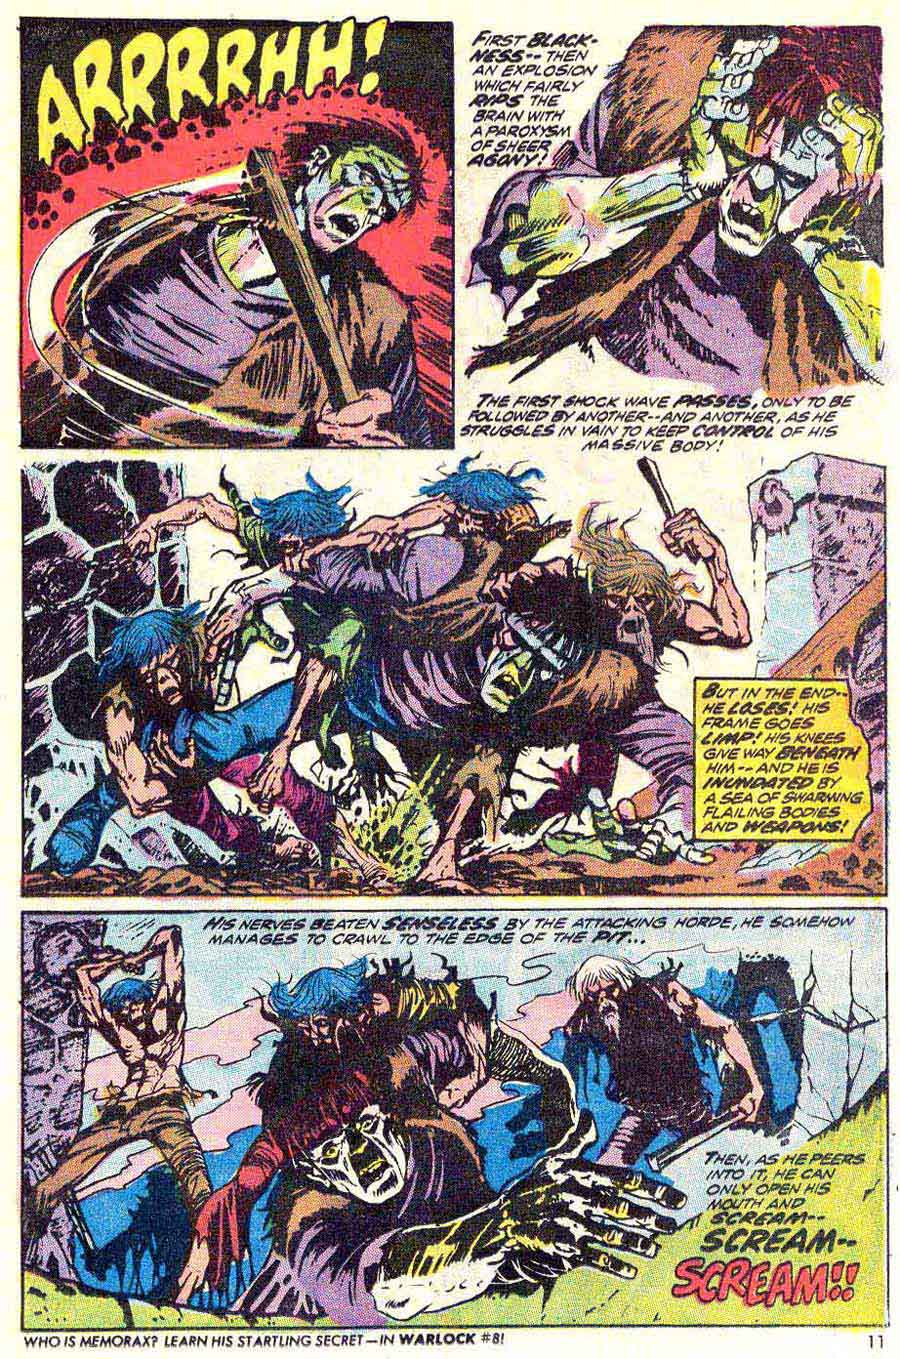 Frankenstein v2 #6 marvel comic book page art by Mike Ploog